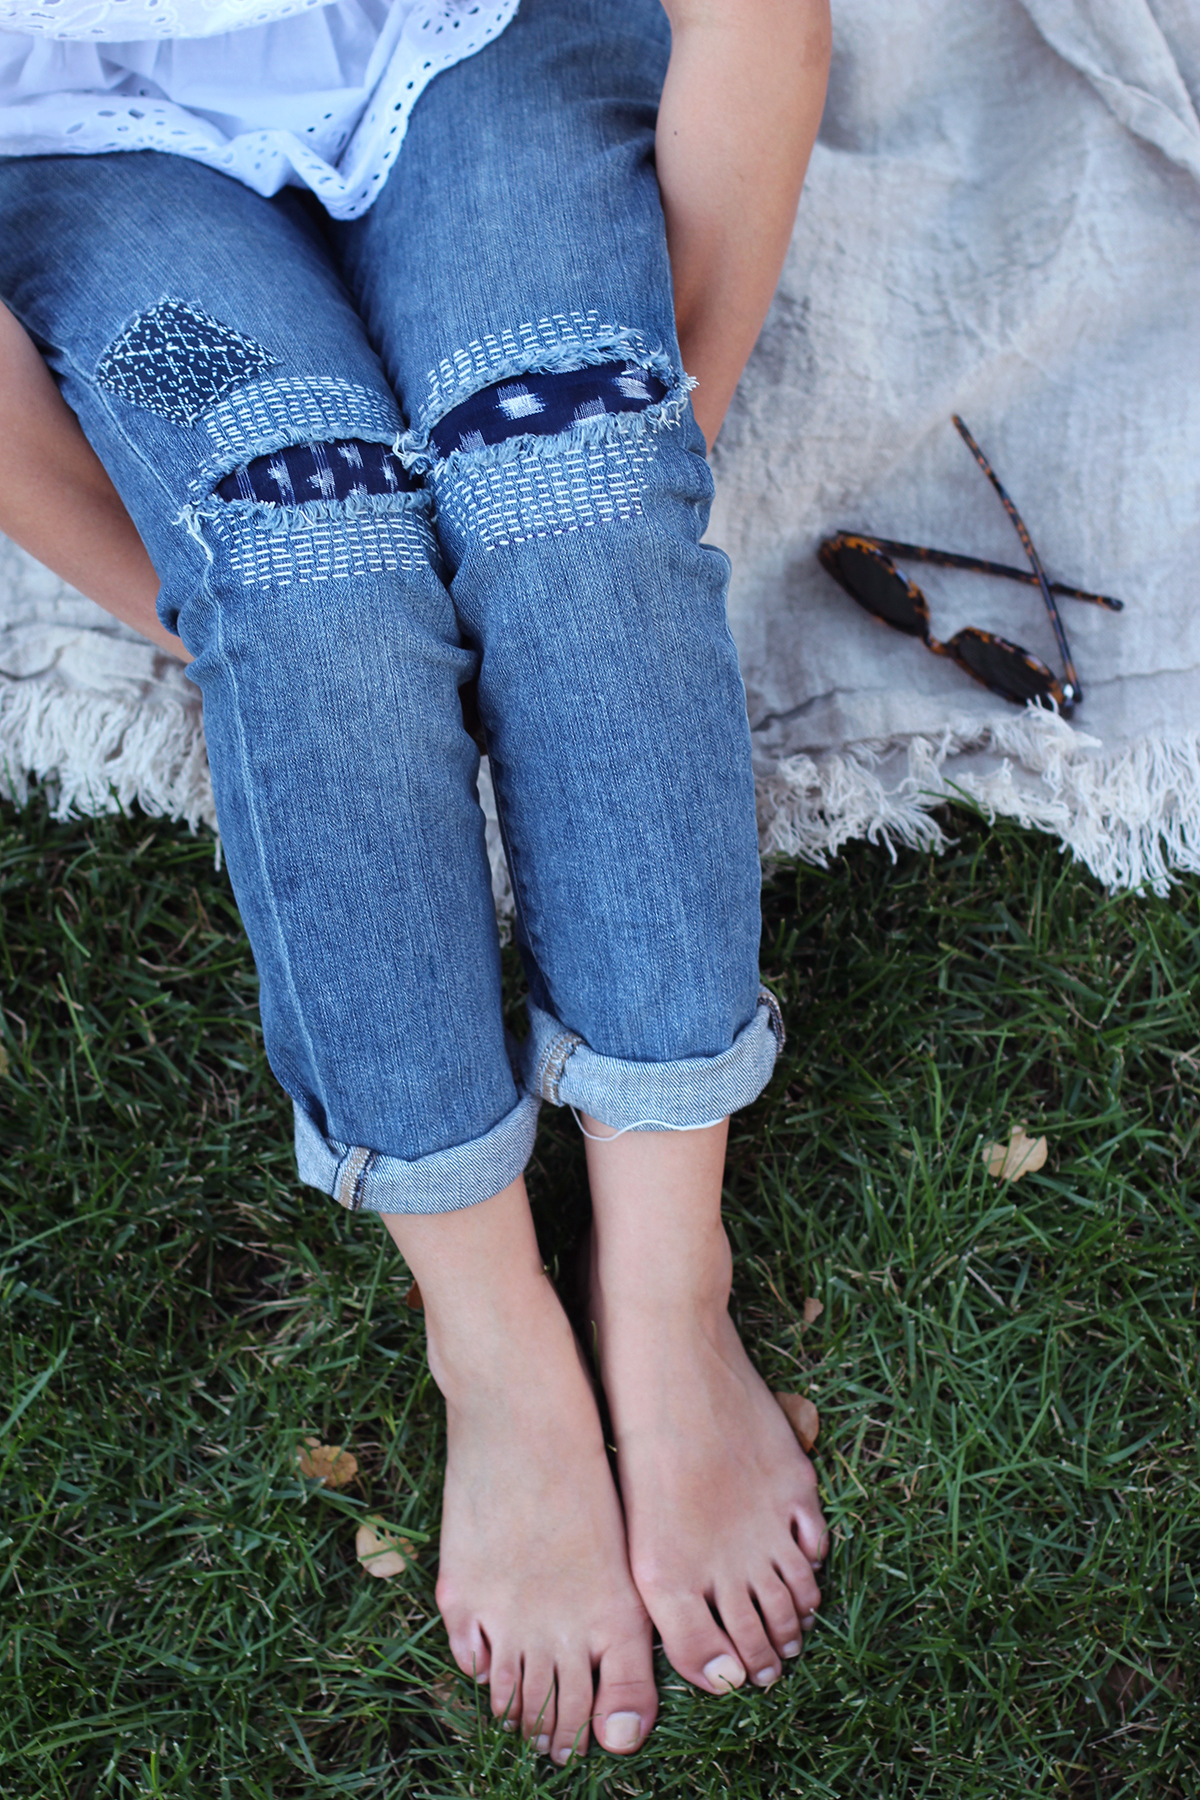 Diy Sashiko Denim Repair Boro Honestly Wtf